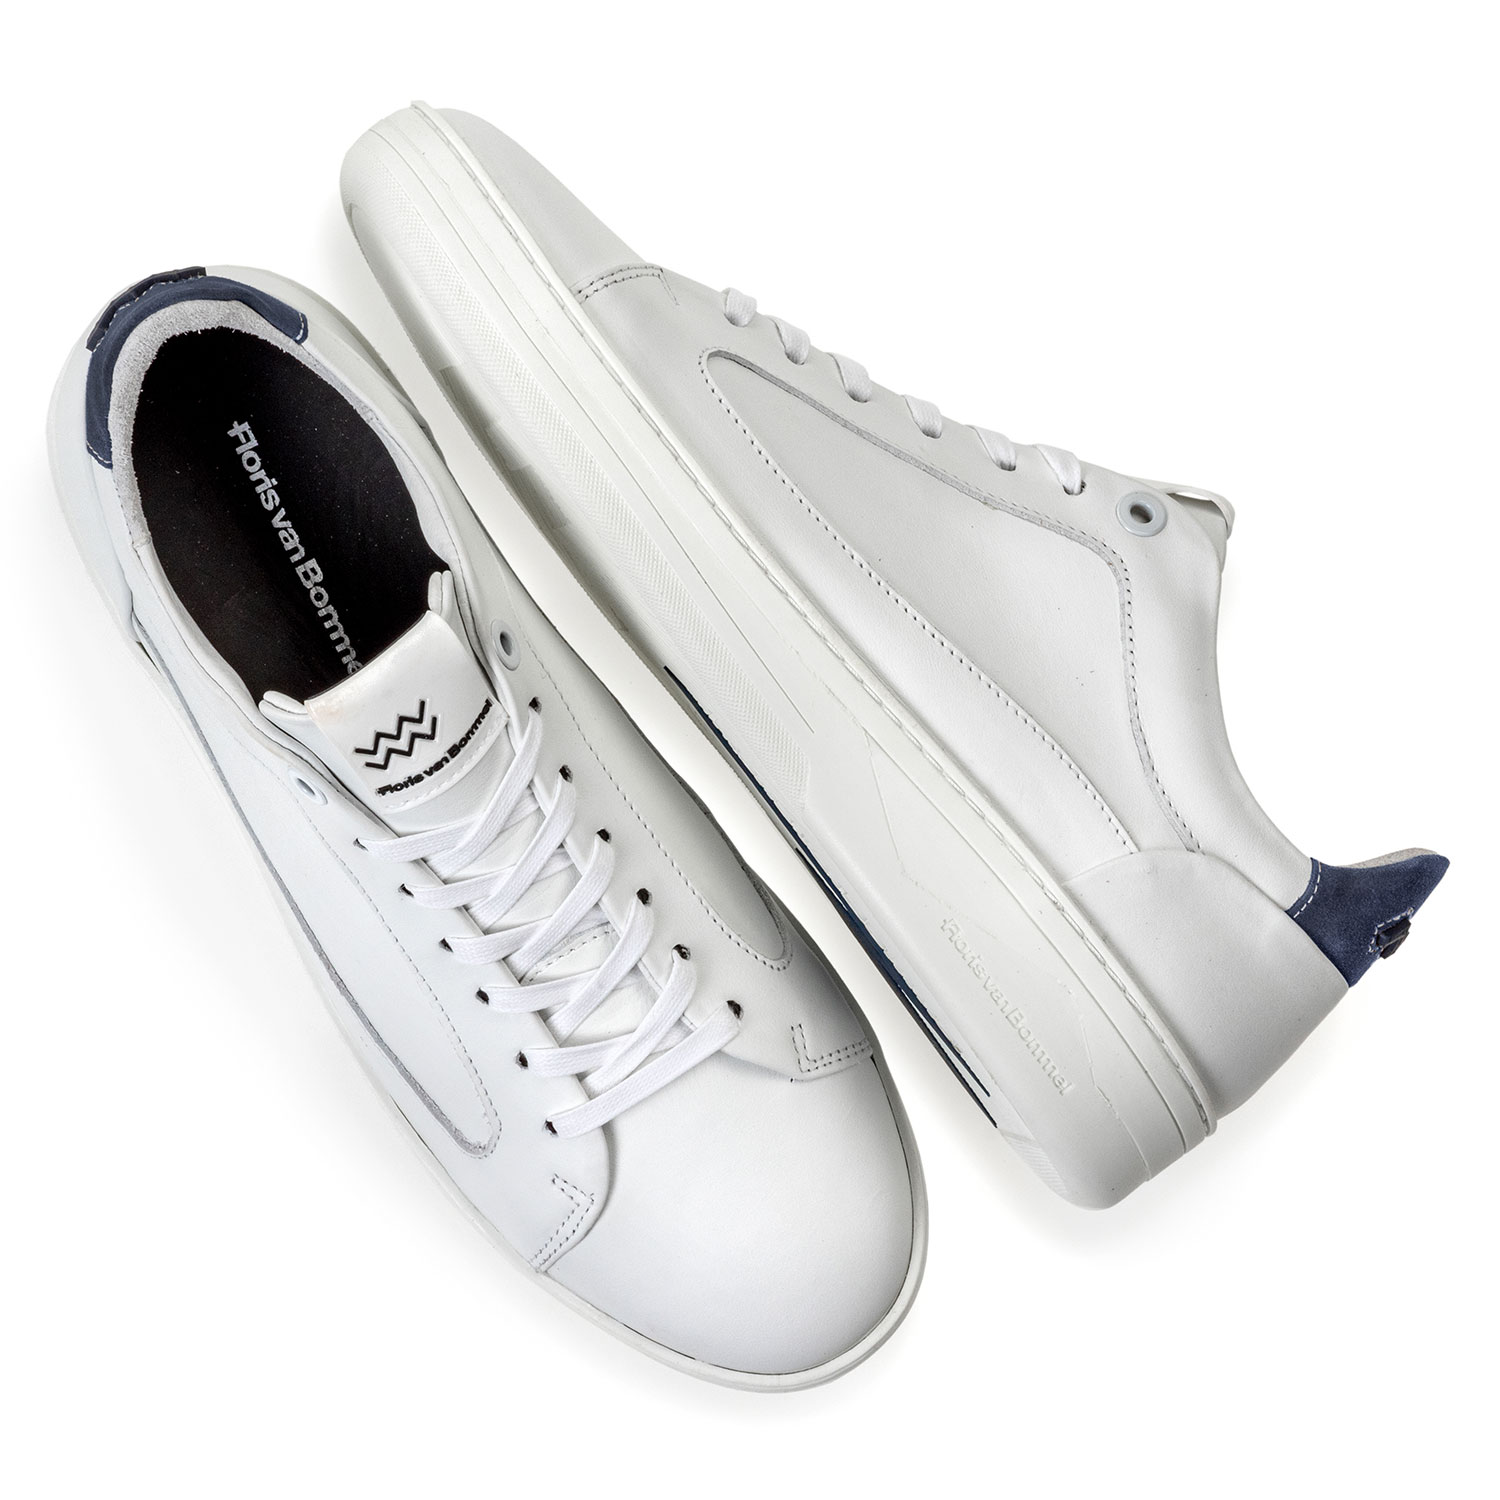 13265/25 - Sneaker leather white